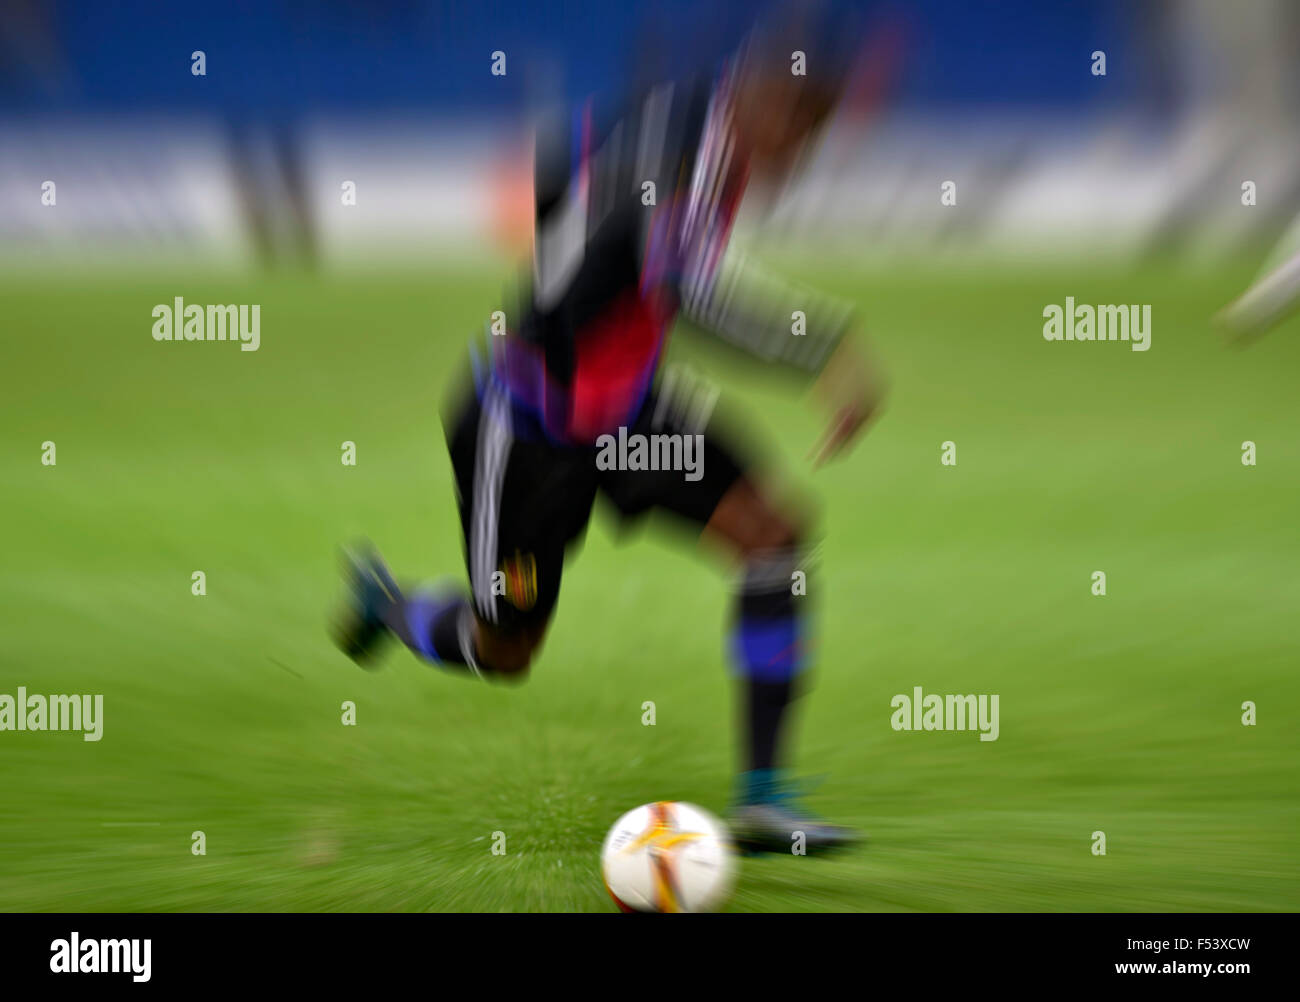 Football player with the ball, in action, zoomed, Basel, Switzerland - Stock Image